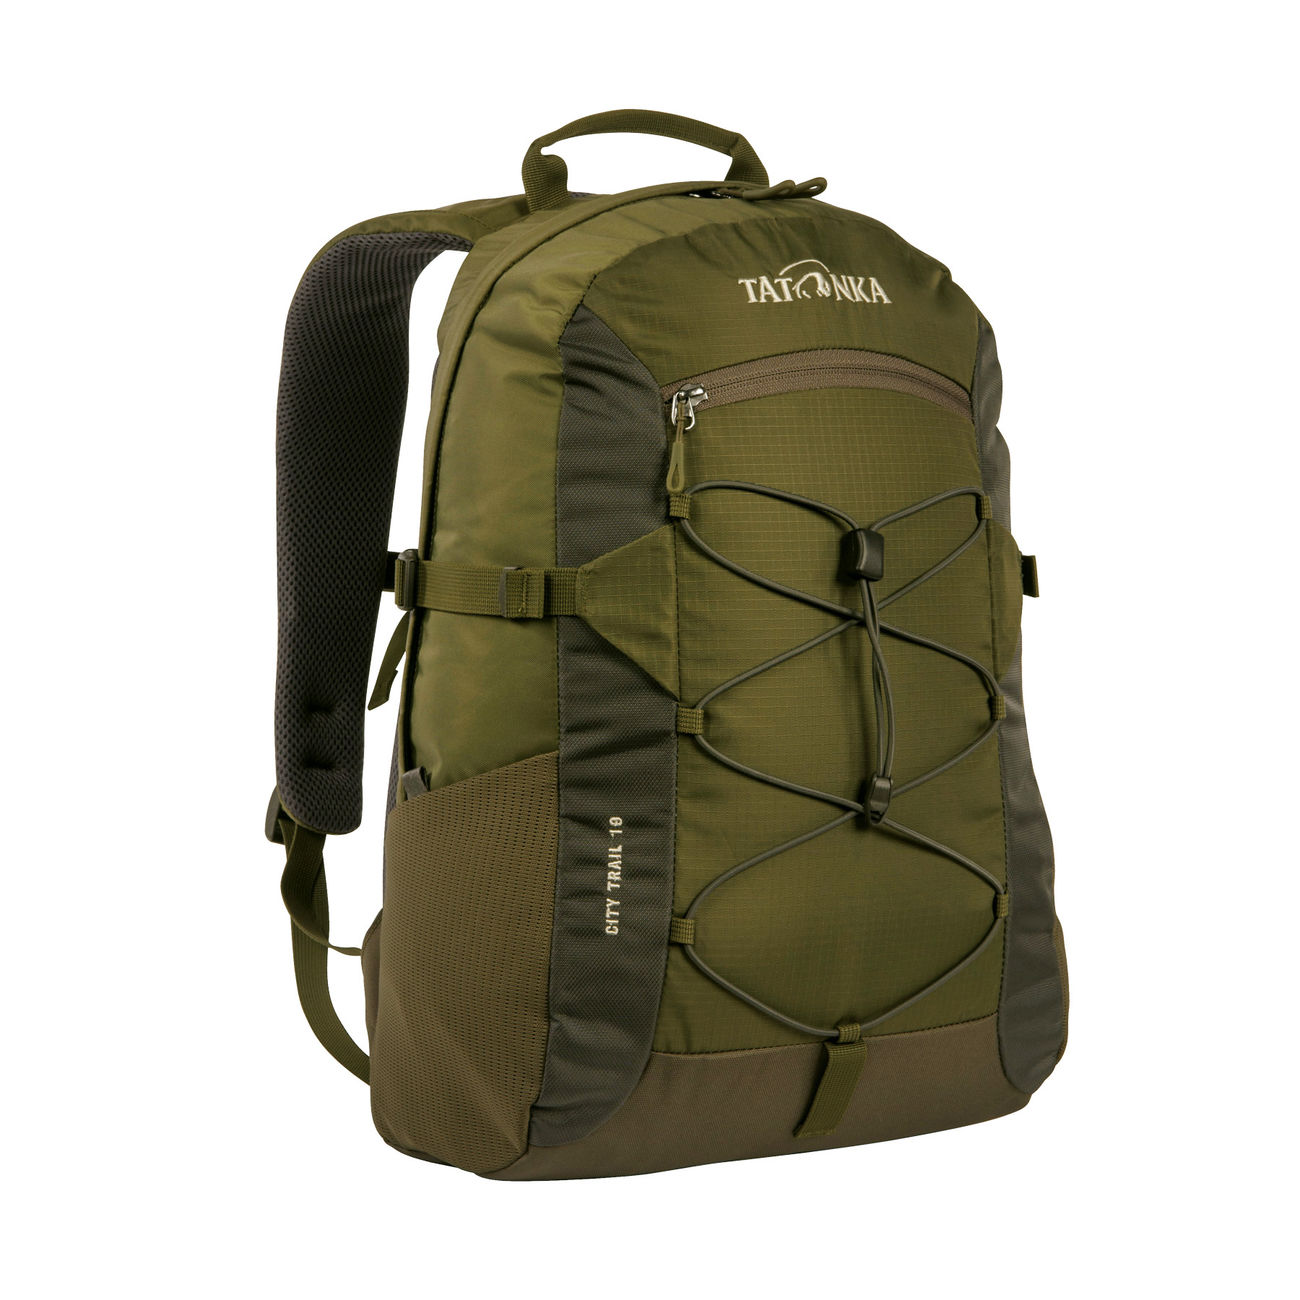 Tatonka Rucksack City Trail 19 oliv 19 Liter 0